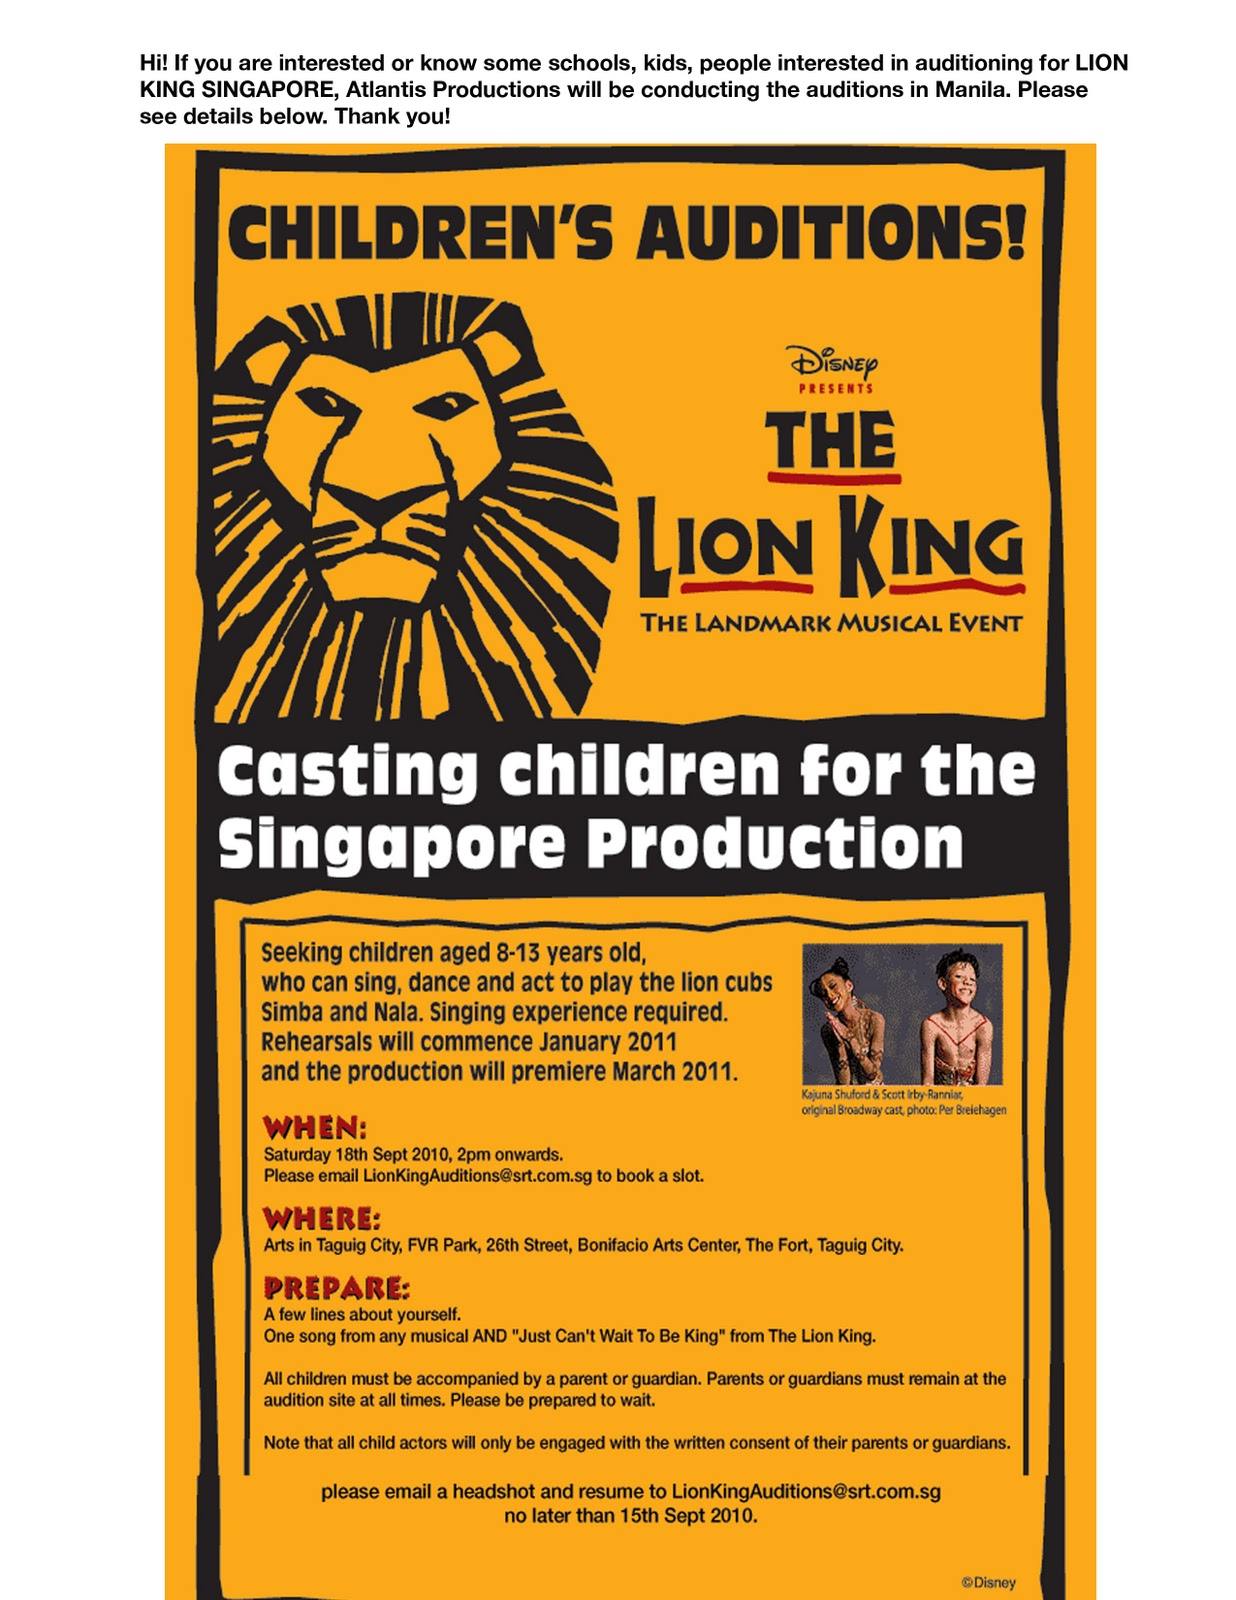 THE LION KING Auditions start in Madrid